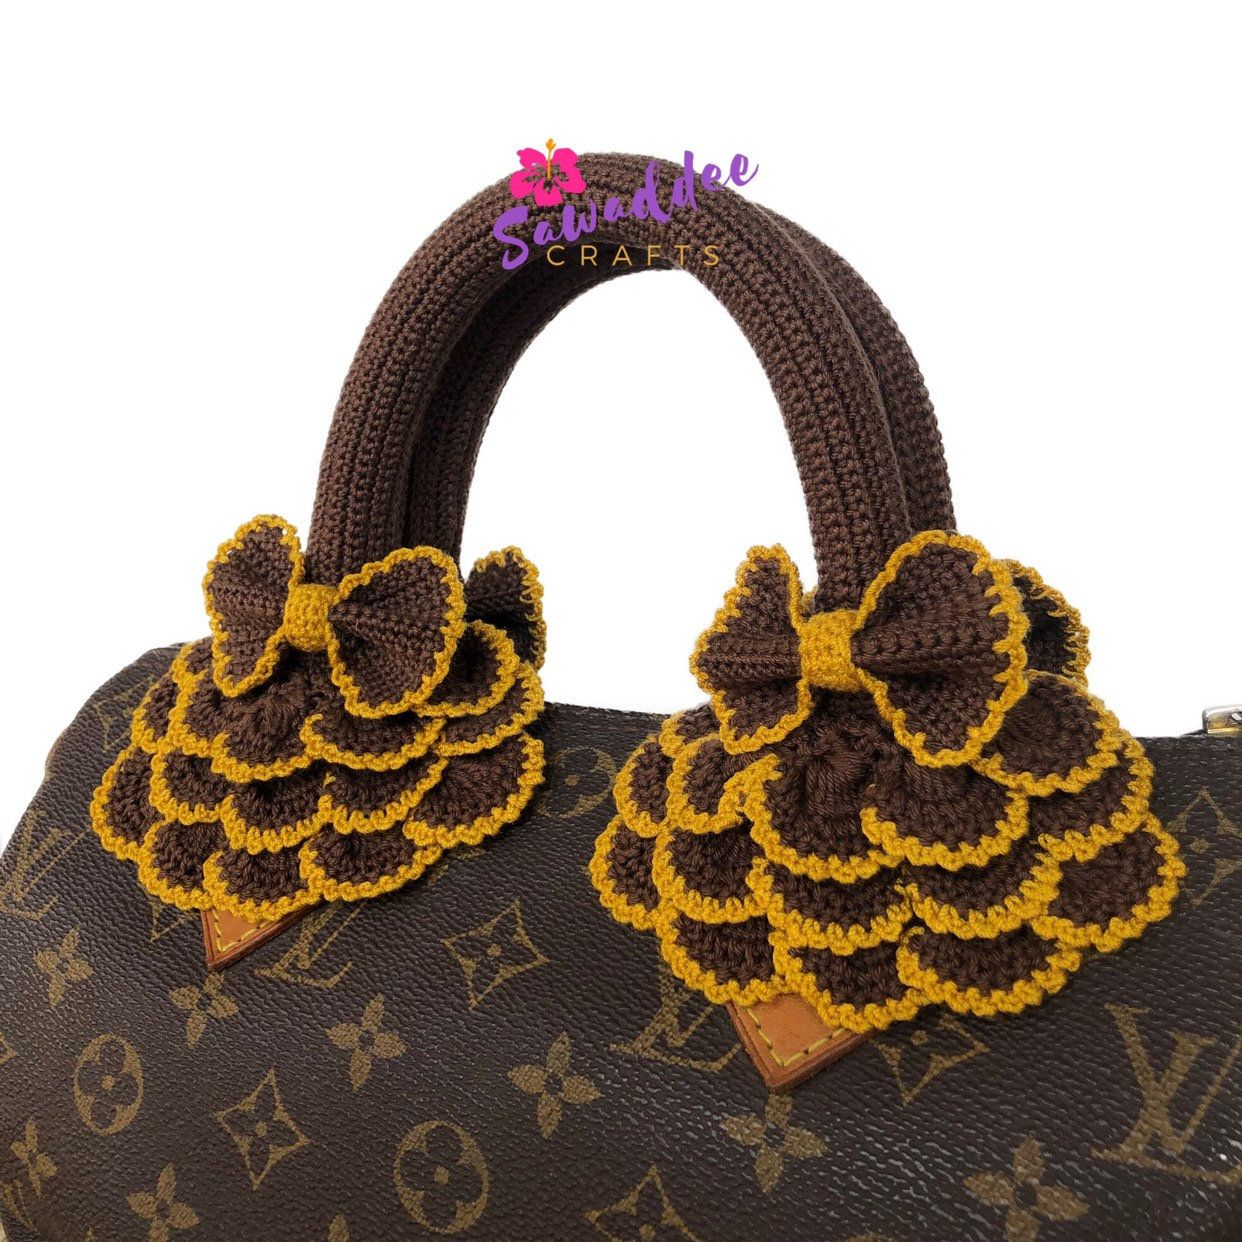 93afd2f7a02f Free shipping Dark brown handmade crochet bag handle cover protector for Louis  Vuitton LV Speedy 25-30-35